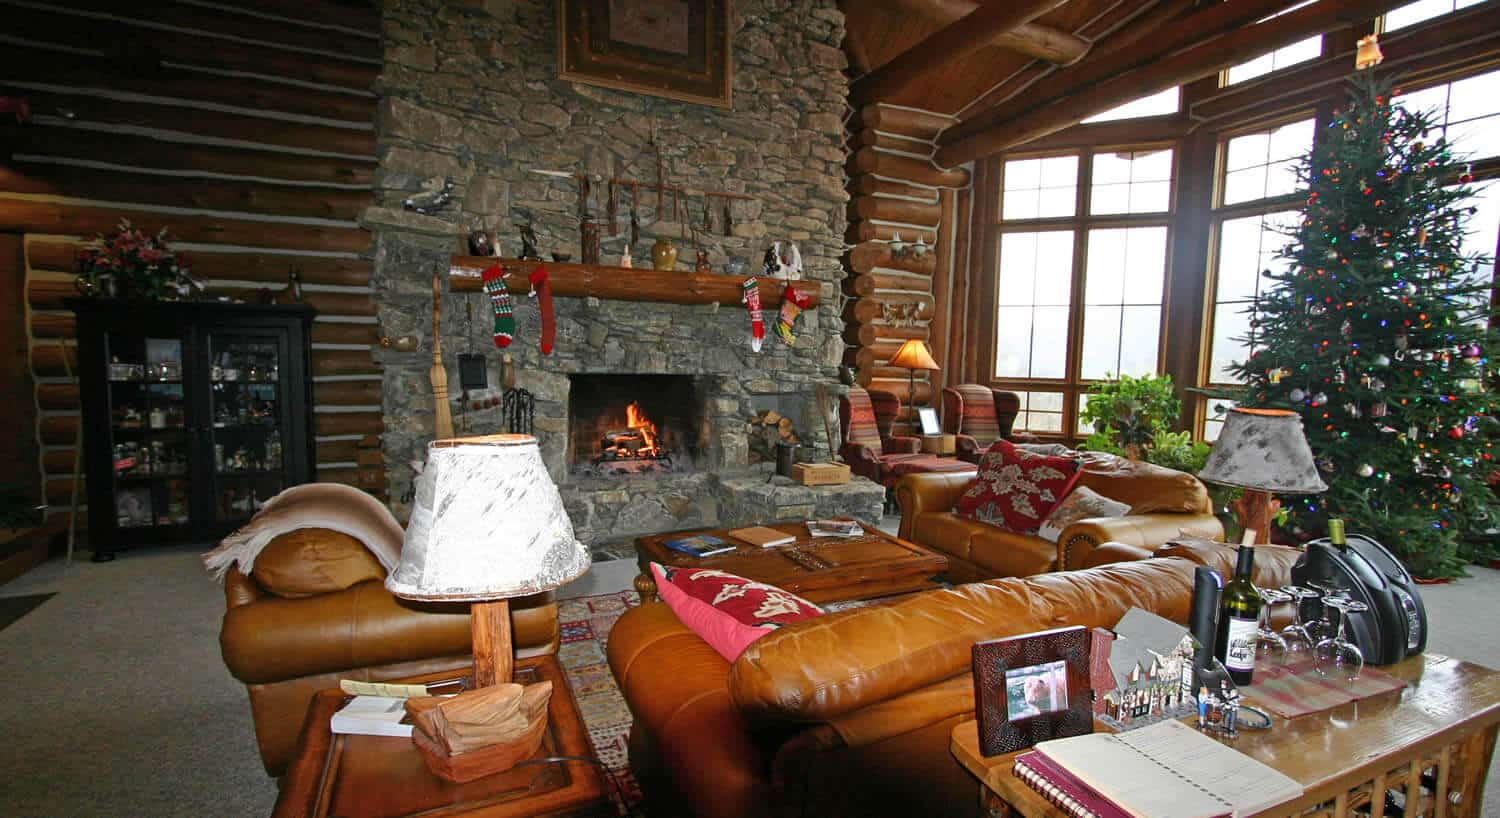 Large living room with stone fireplace decorated for Christmas.